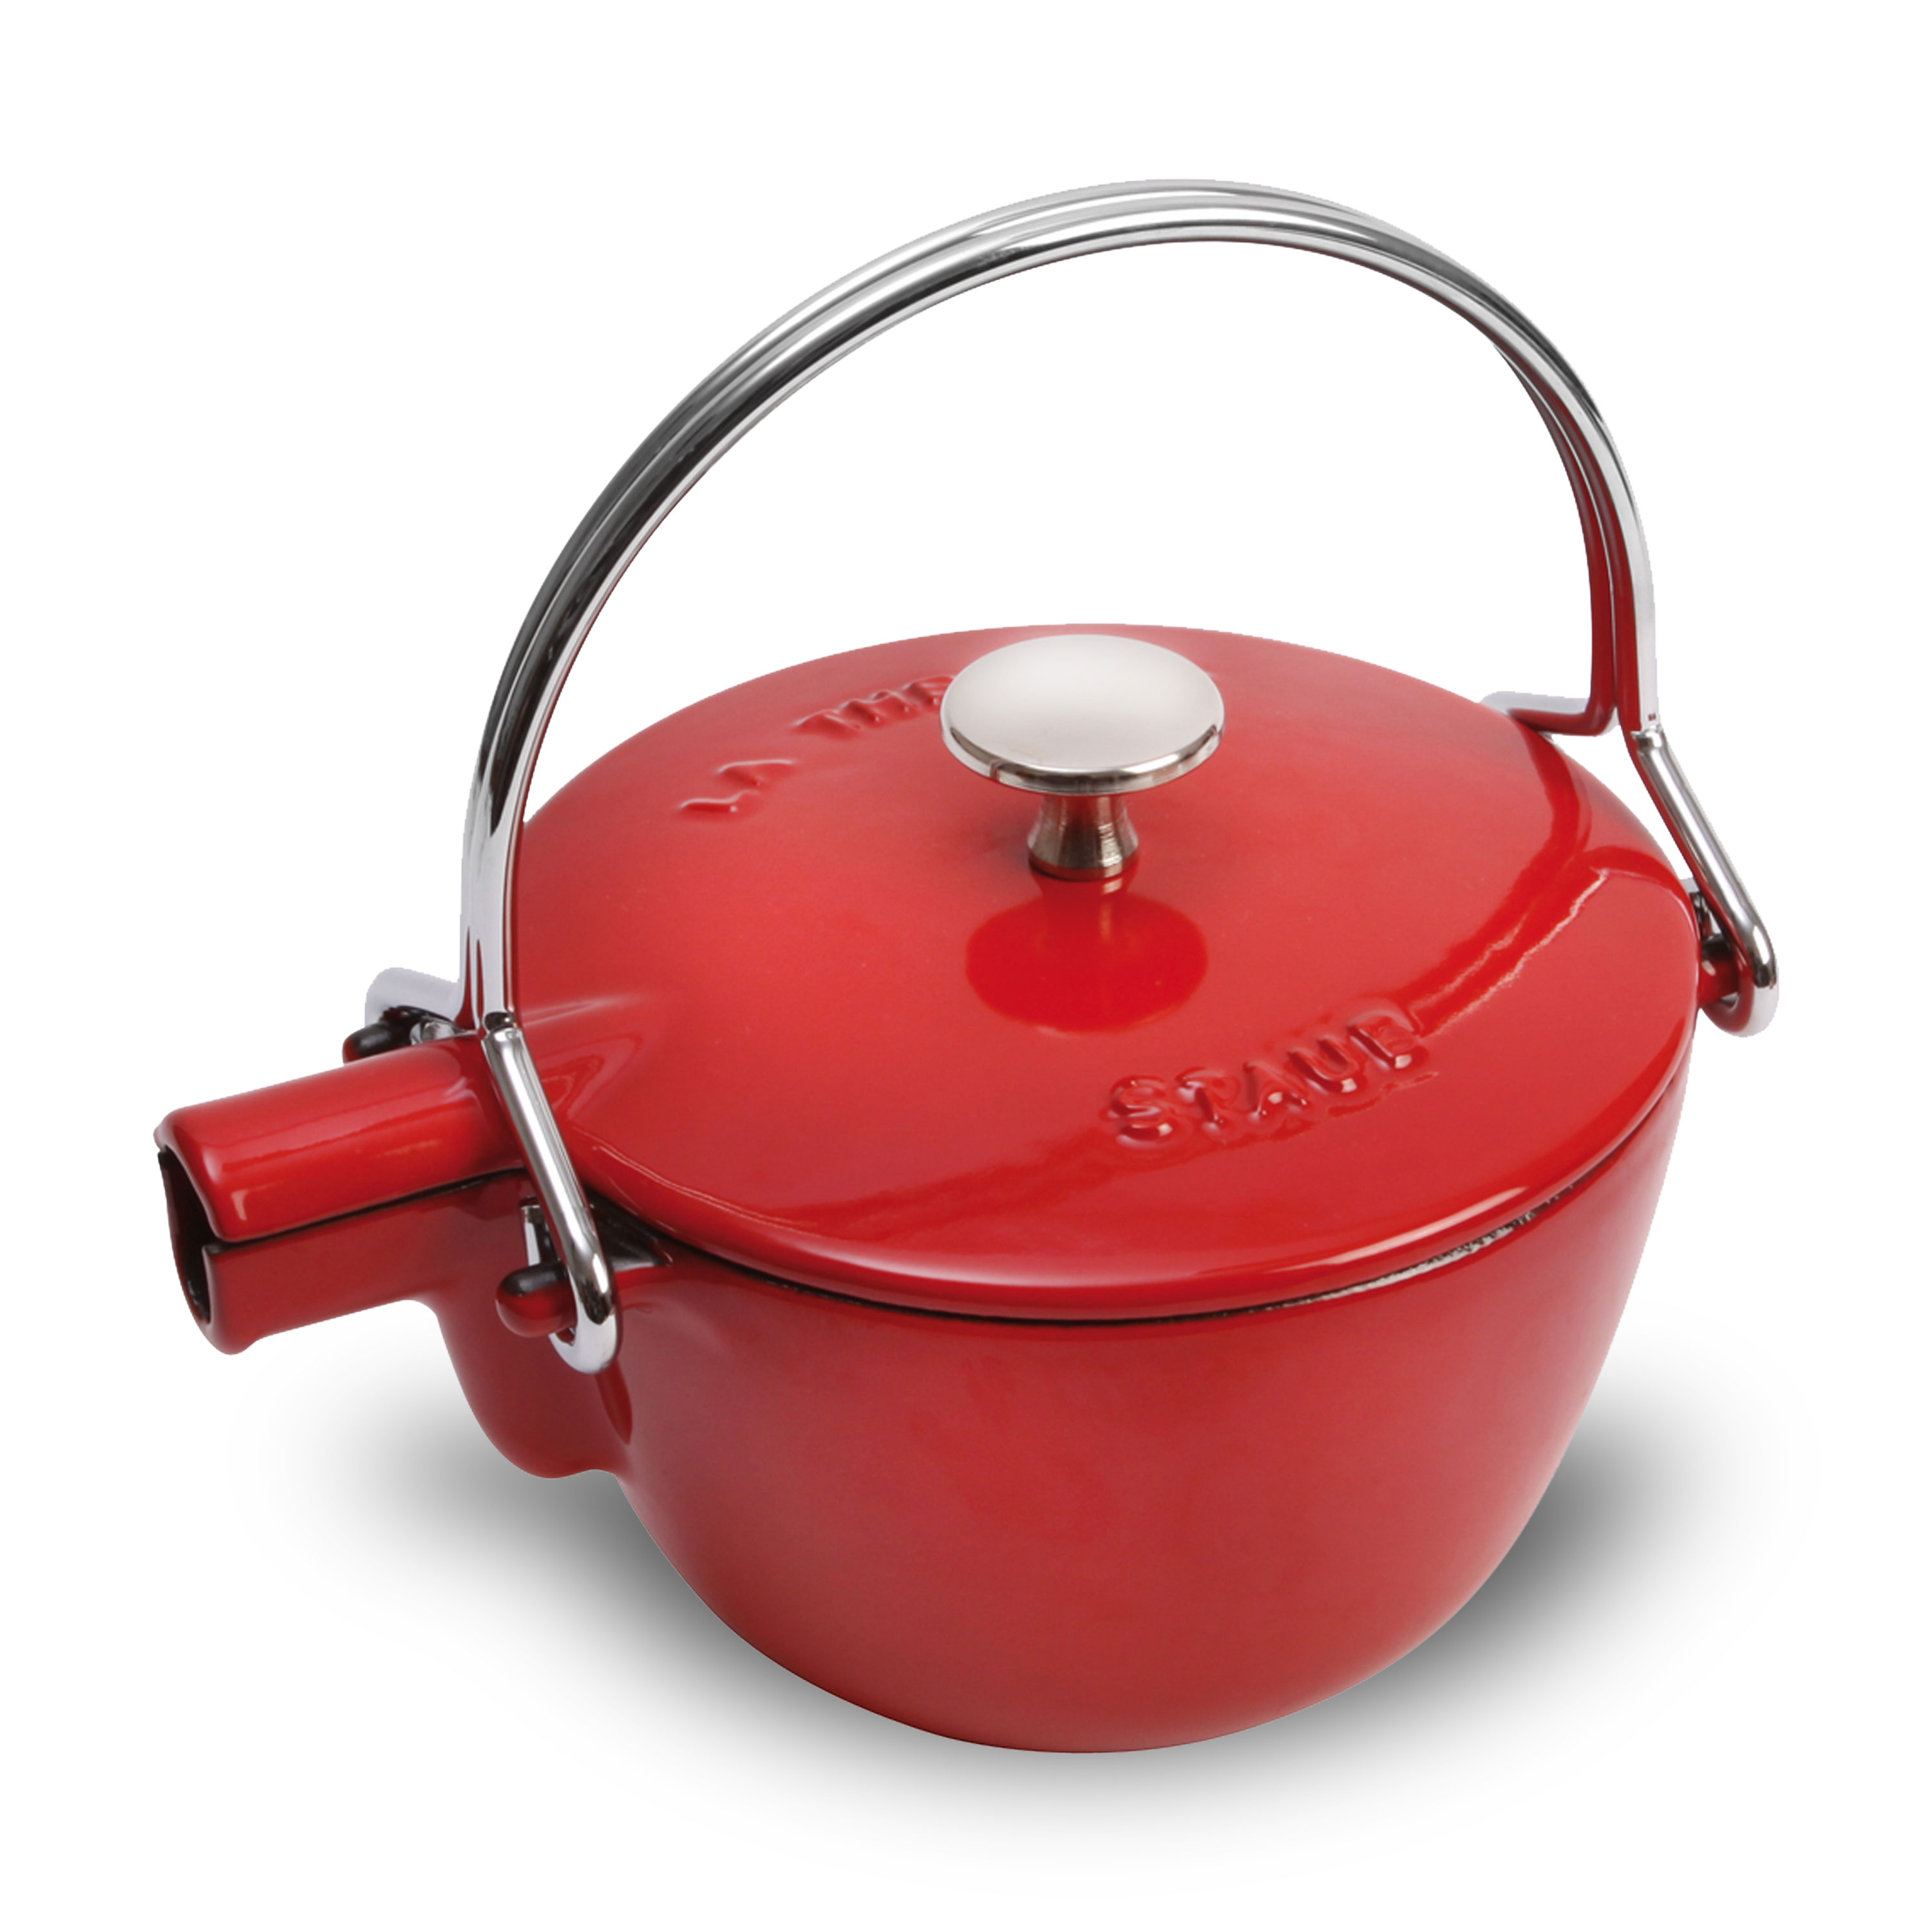 Staub La Theiere Teapot 1 Quart Cherry Red Cutlery And